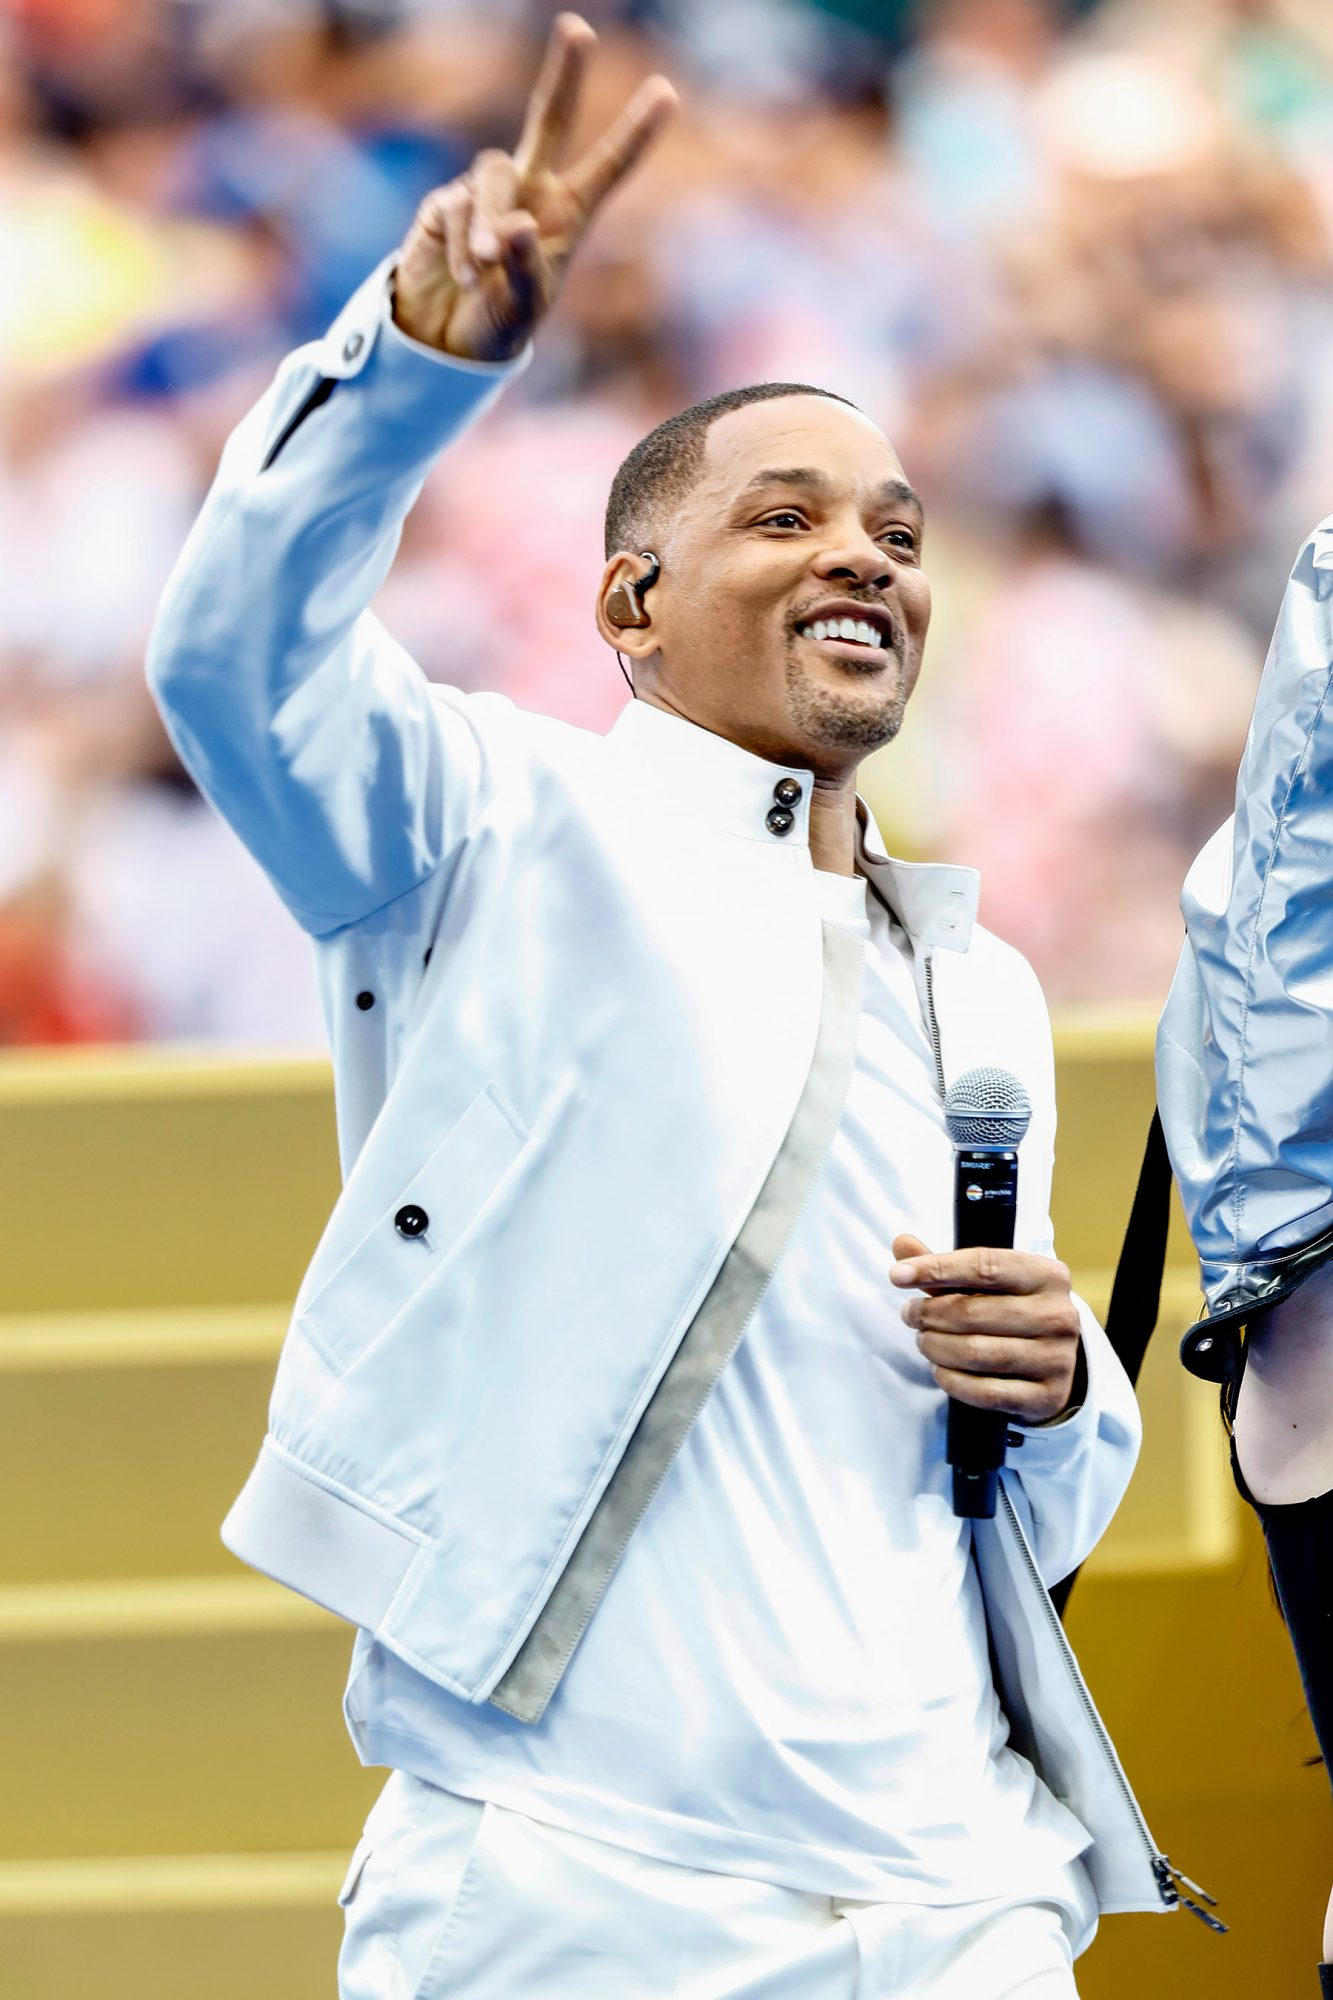 Will Smith during the closing ceremony prior to the 2018 FIFA World Cup Russia